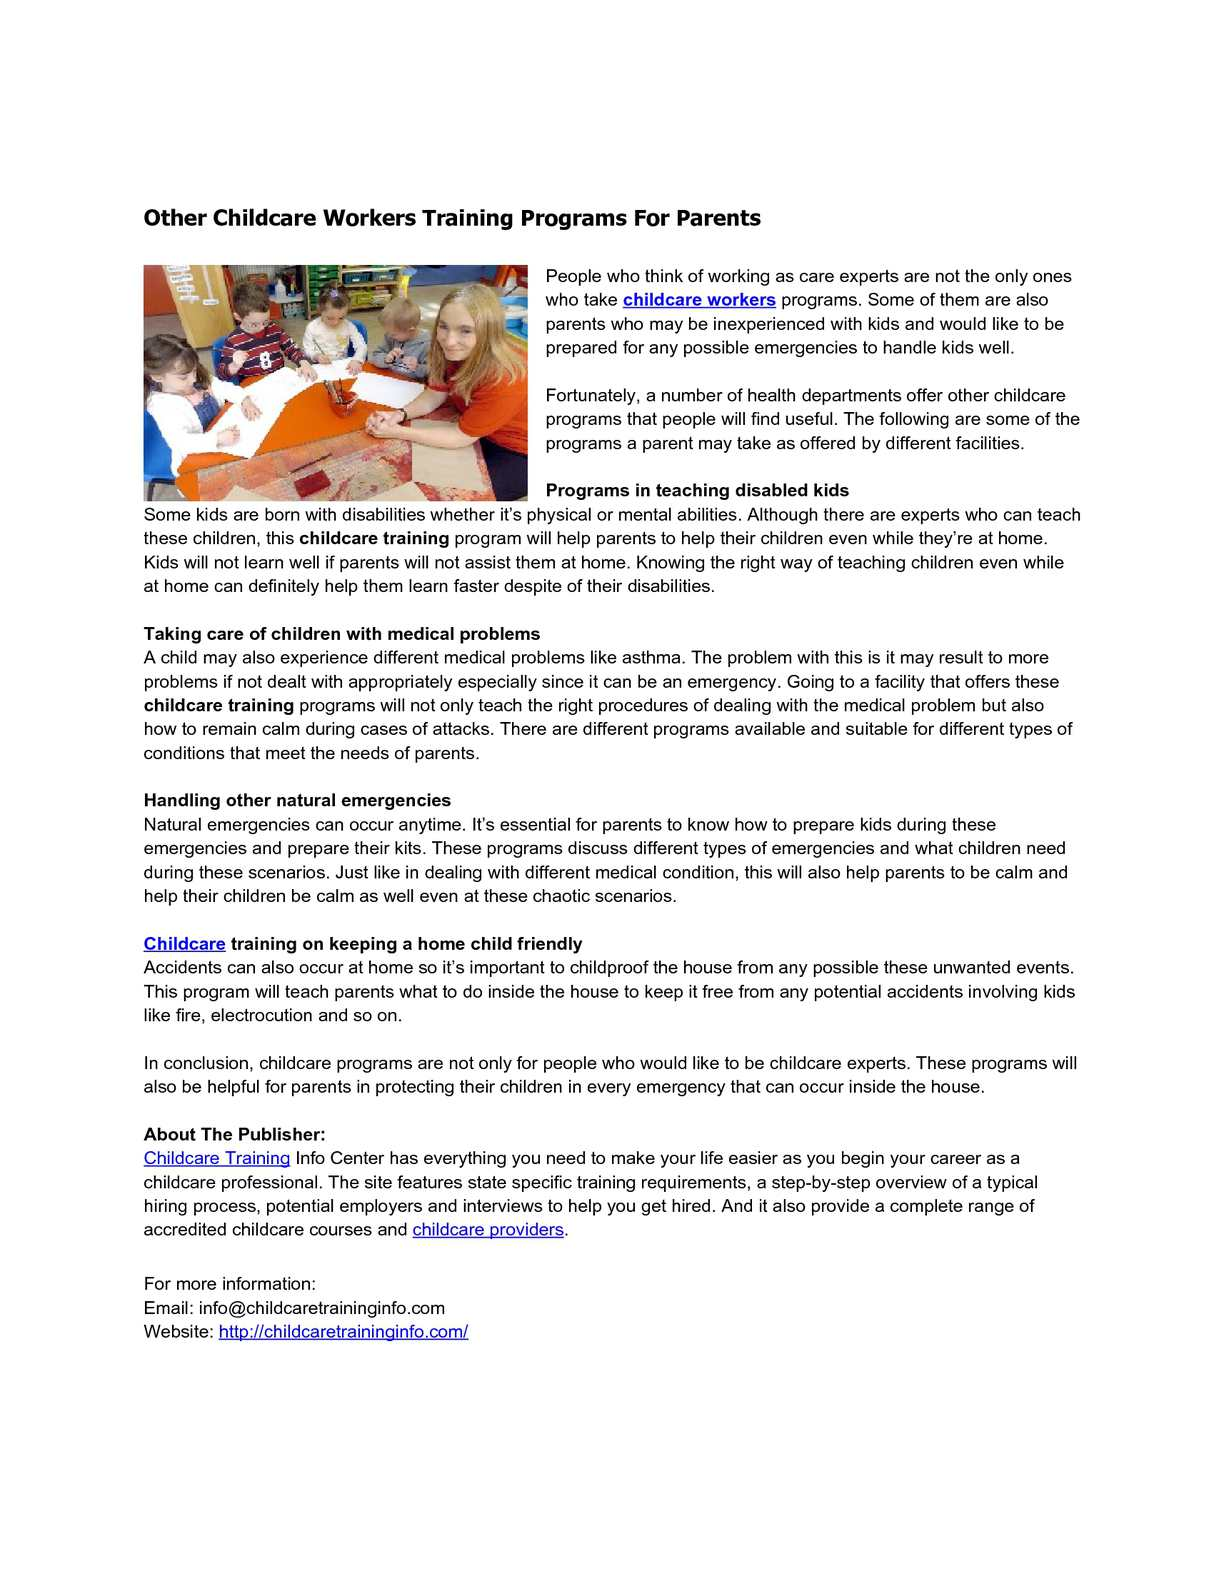 Calamo Other Childcare Workers Training Programs For Parents